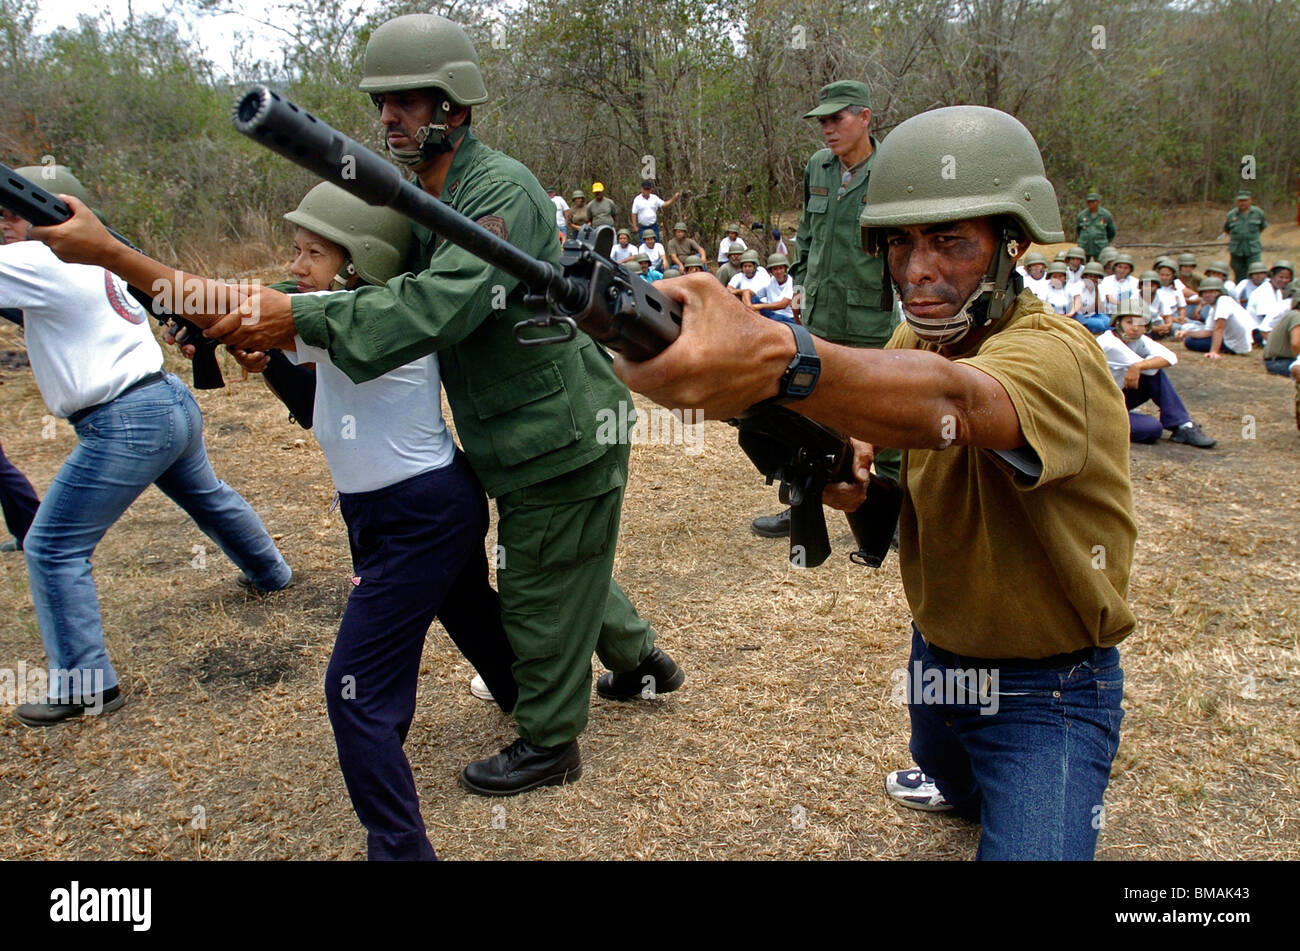 Army reservists receive military training in Charallave, Venezuela, March 25, 2006. Photo/Chico Sanchez Stock Photo